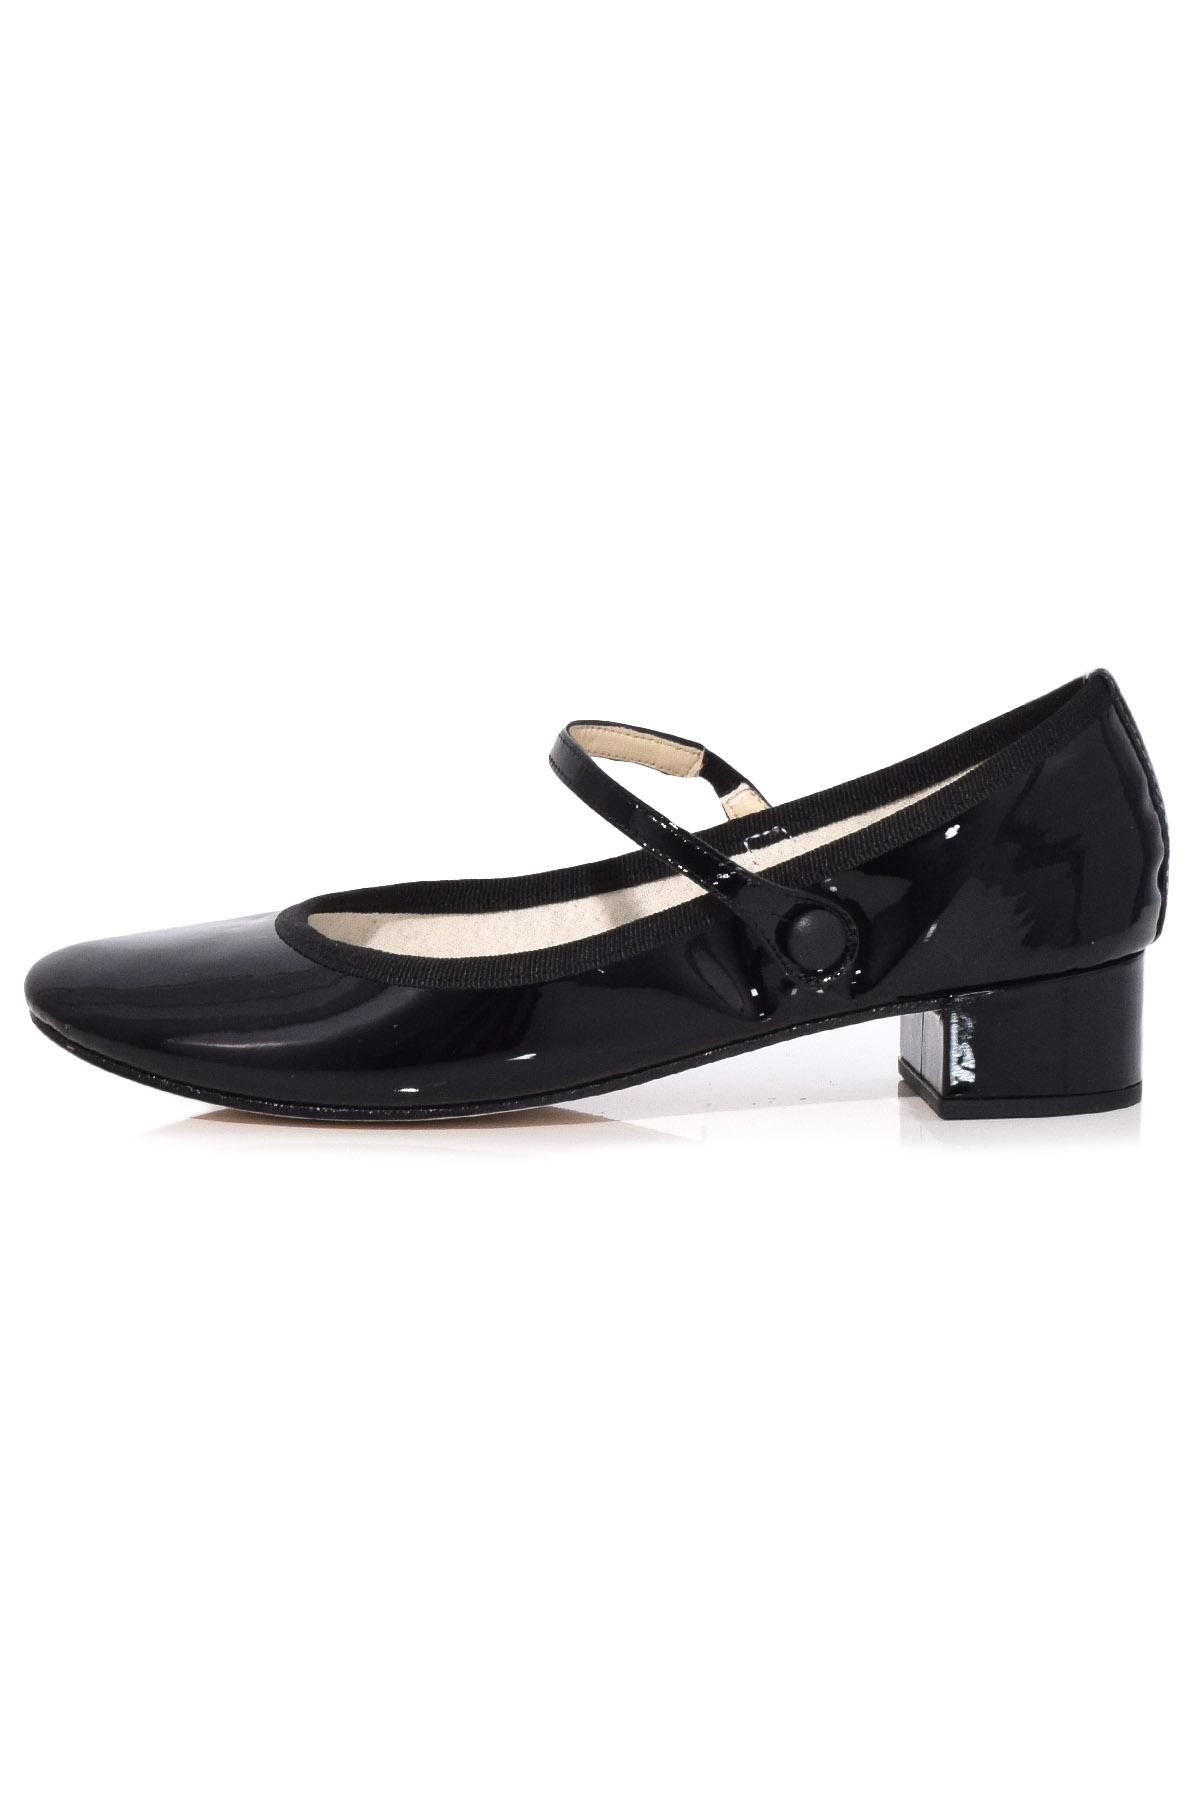 Repetto Black Patent Rose Mary Jane Heels outlet brand new unisex sPZKqSW7DI